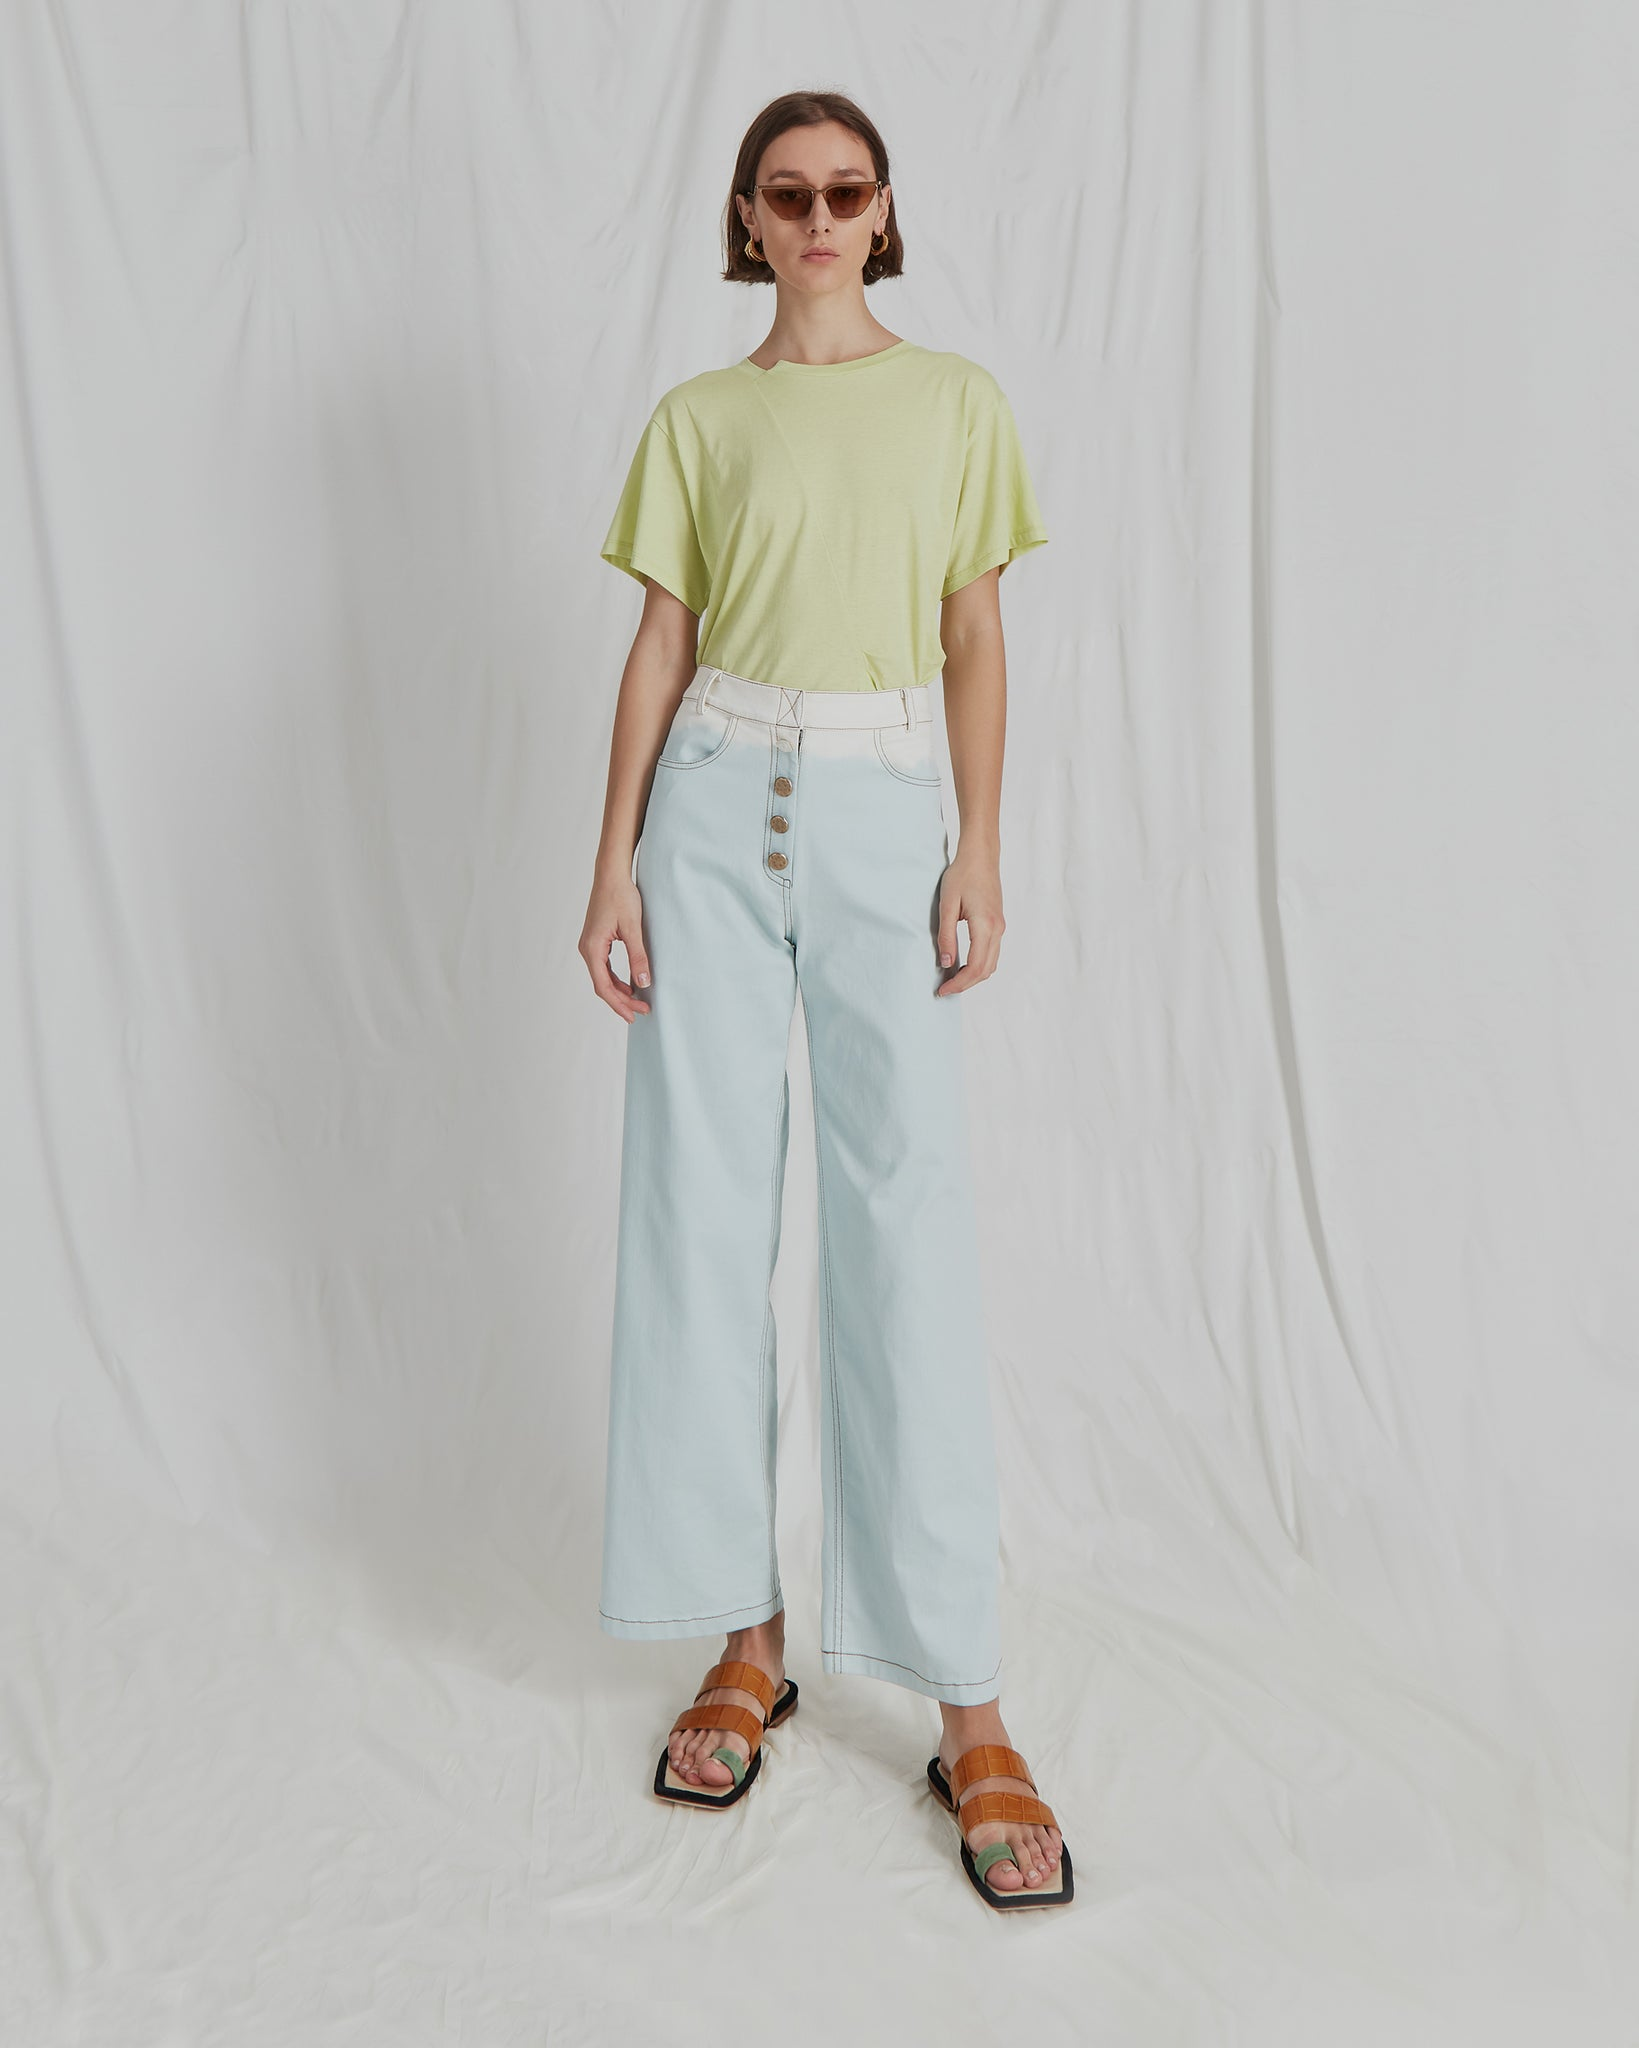 Valerie Jeans Cotton Denim Ombre Sky  - SPECIAL PRICEBlue